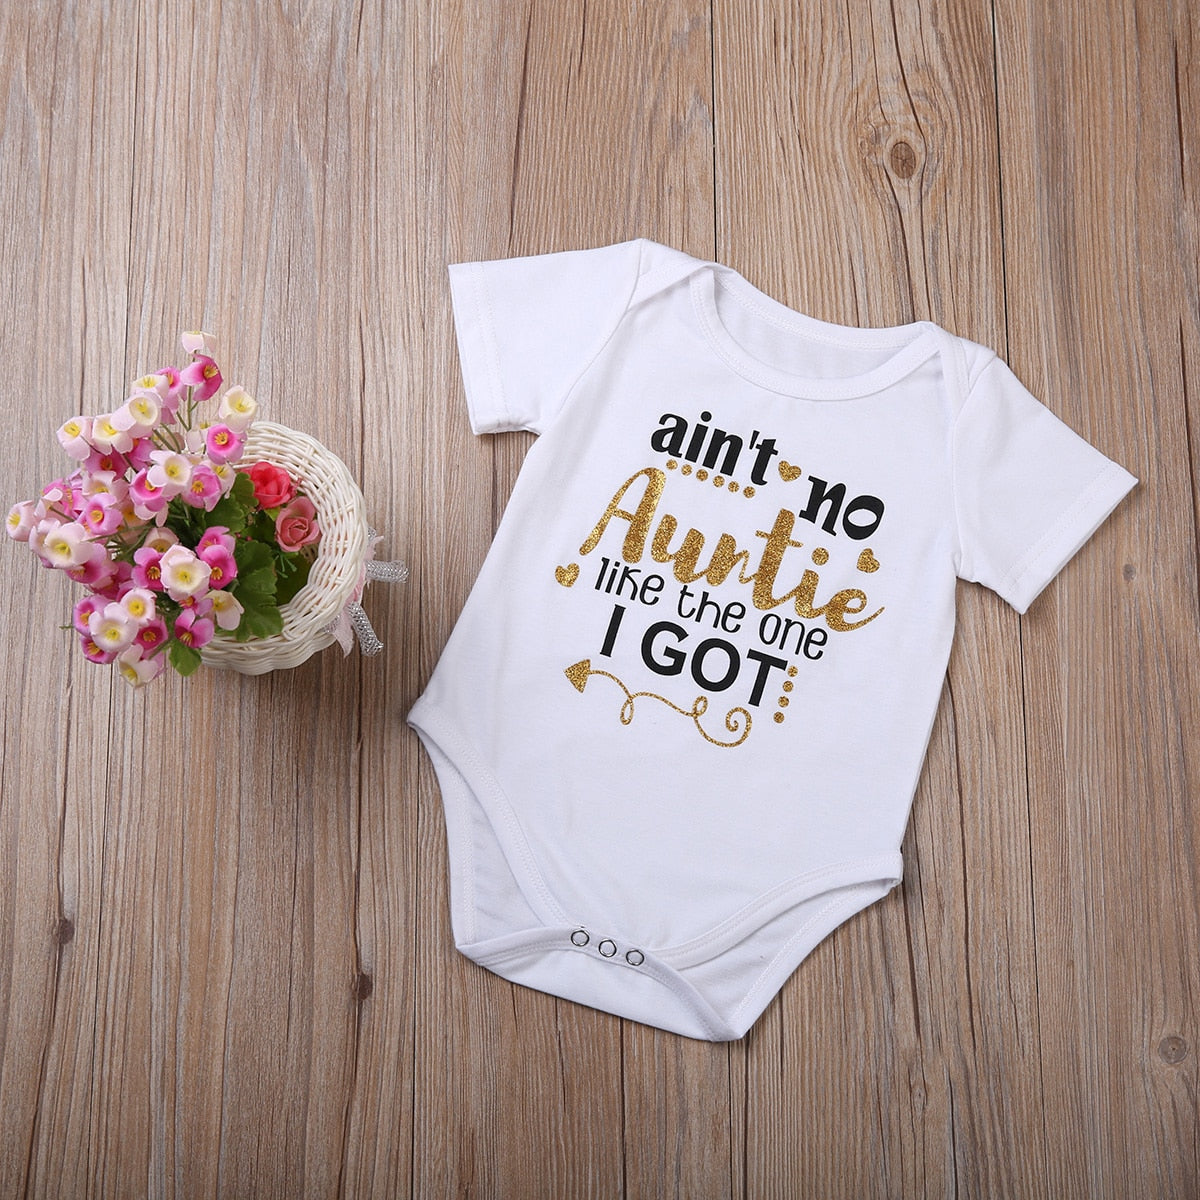 Infant Baby Boys girls gold letter bodysuit summer ain't no Auntie Kids Boysuit Cotton baby Clothes Outfits-eosegal